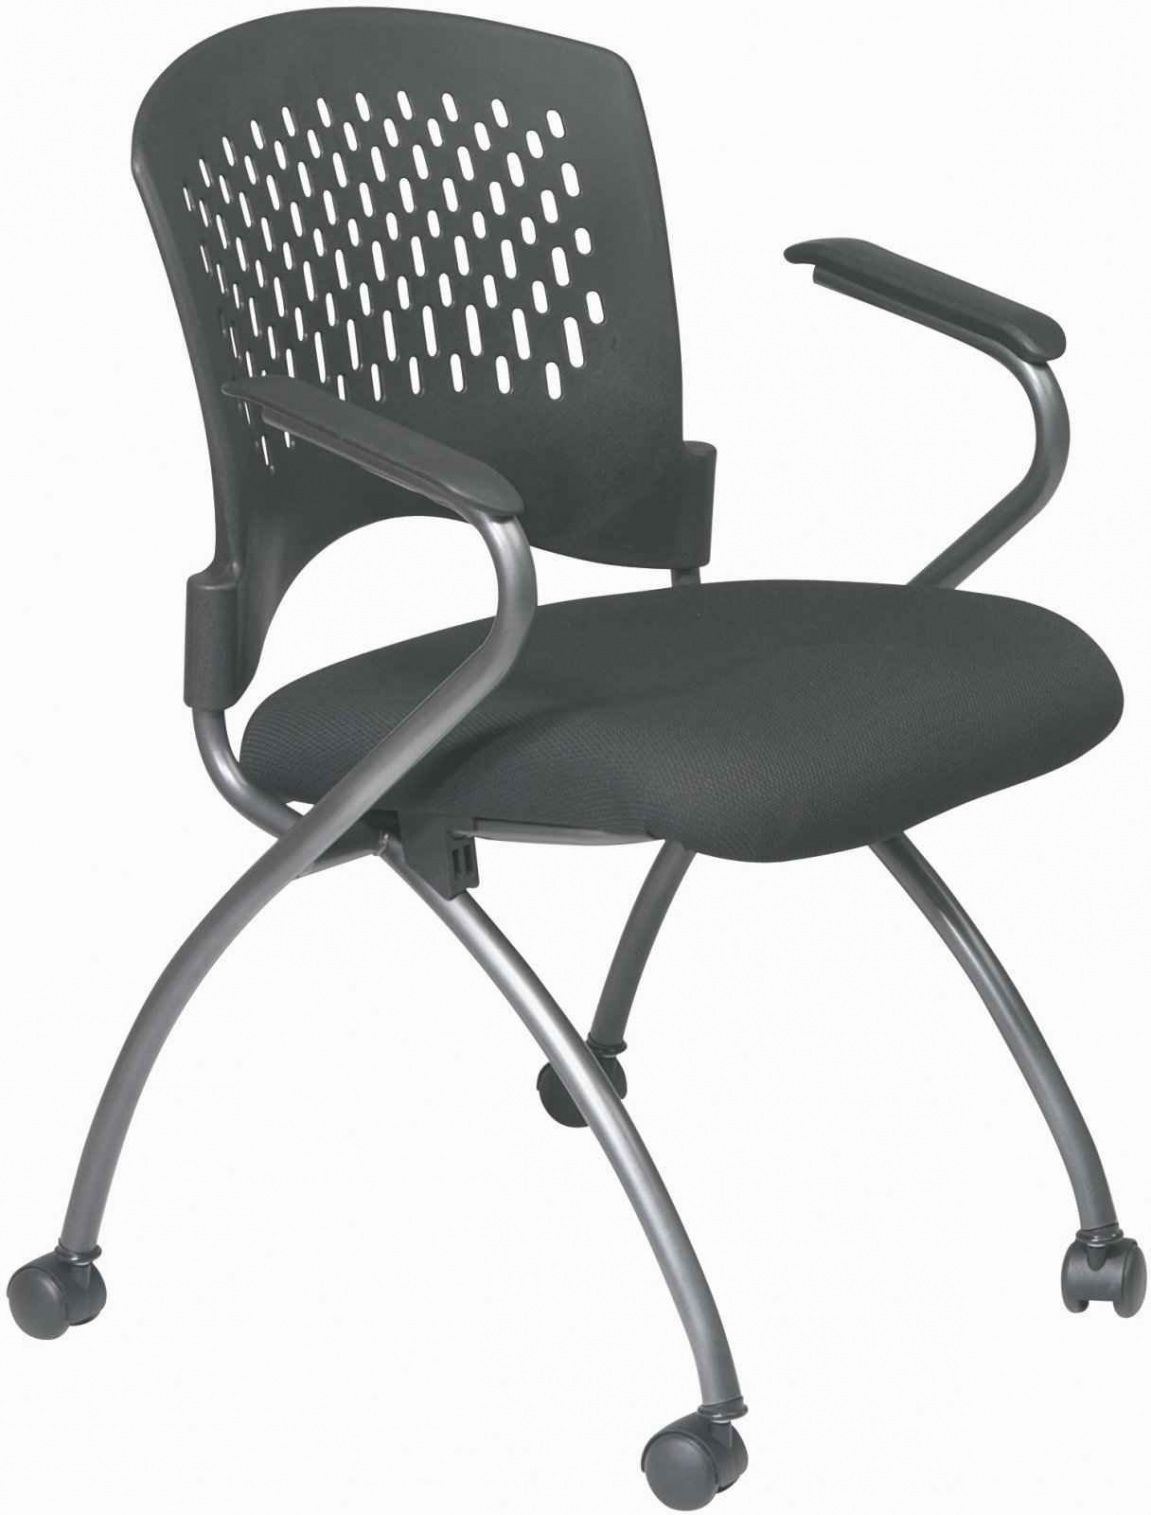 Folding Office Chair With Wheels Luxury Home Office Furniture Check More At Http Www Drjamesghoodb Padded Folding Chairs Folding Chair Best Computer Chairs